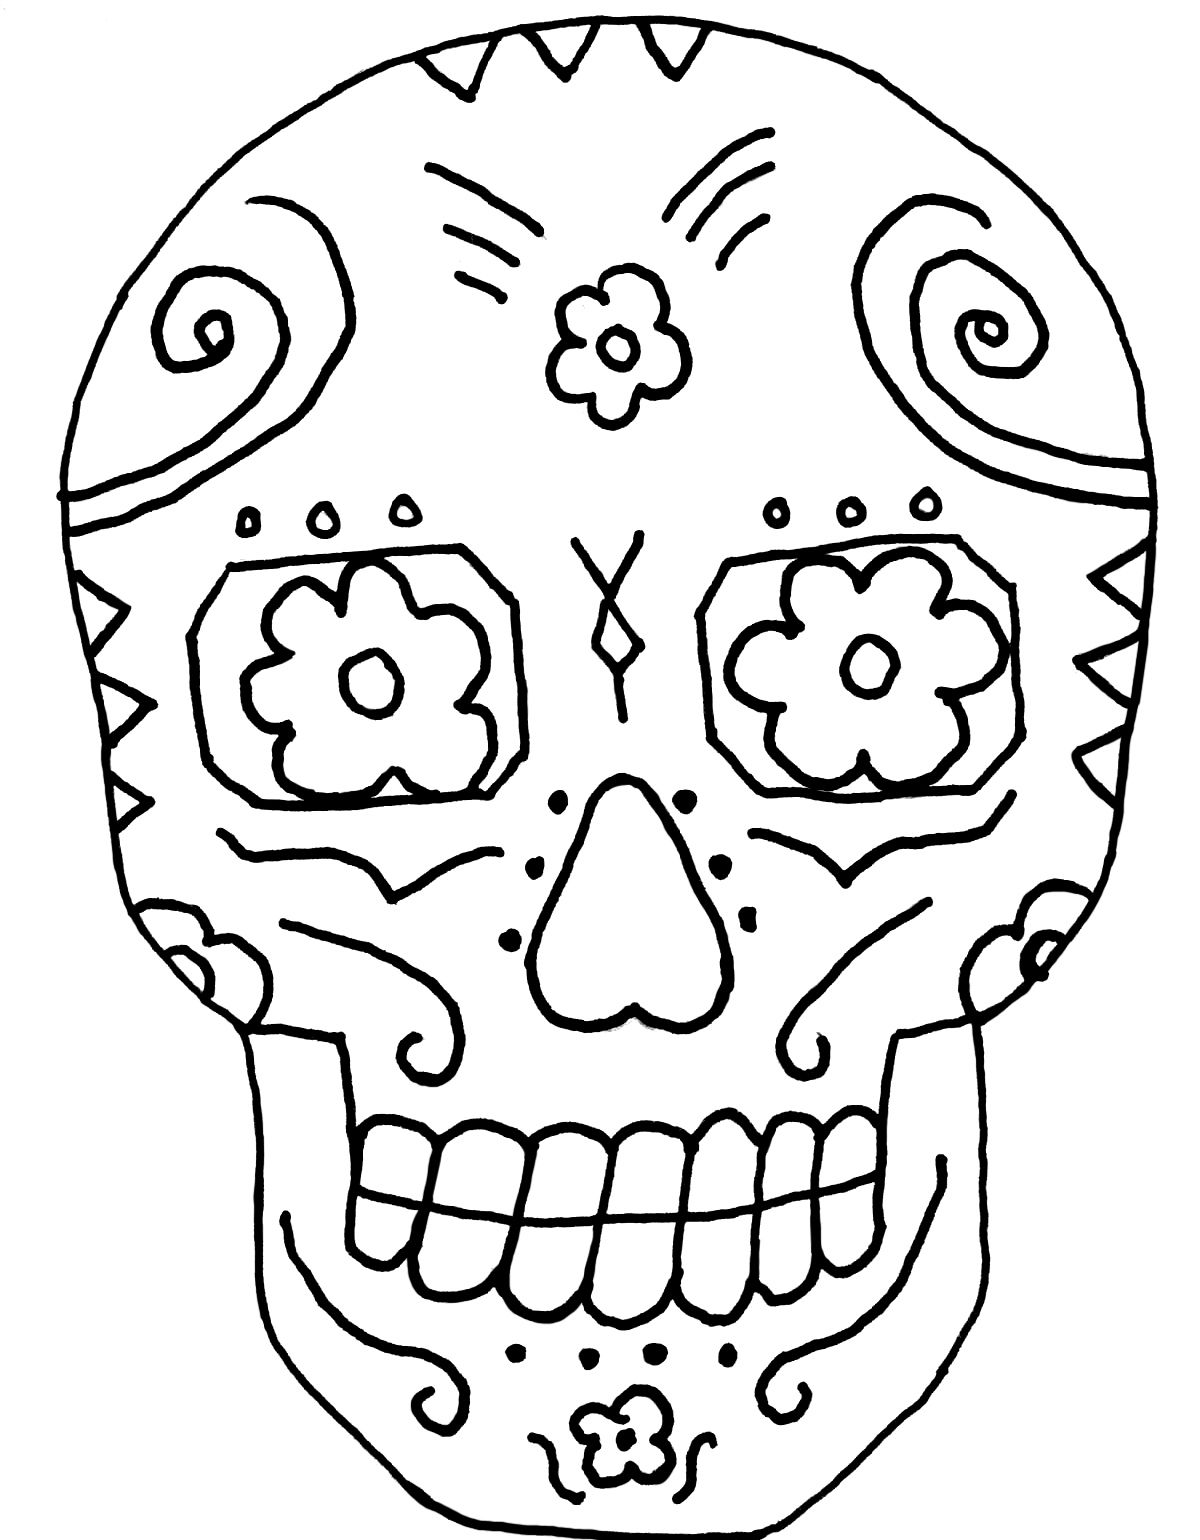 Halloween art therapy coloring pages - Find This Pin And More On Art Therapy 2